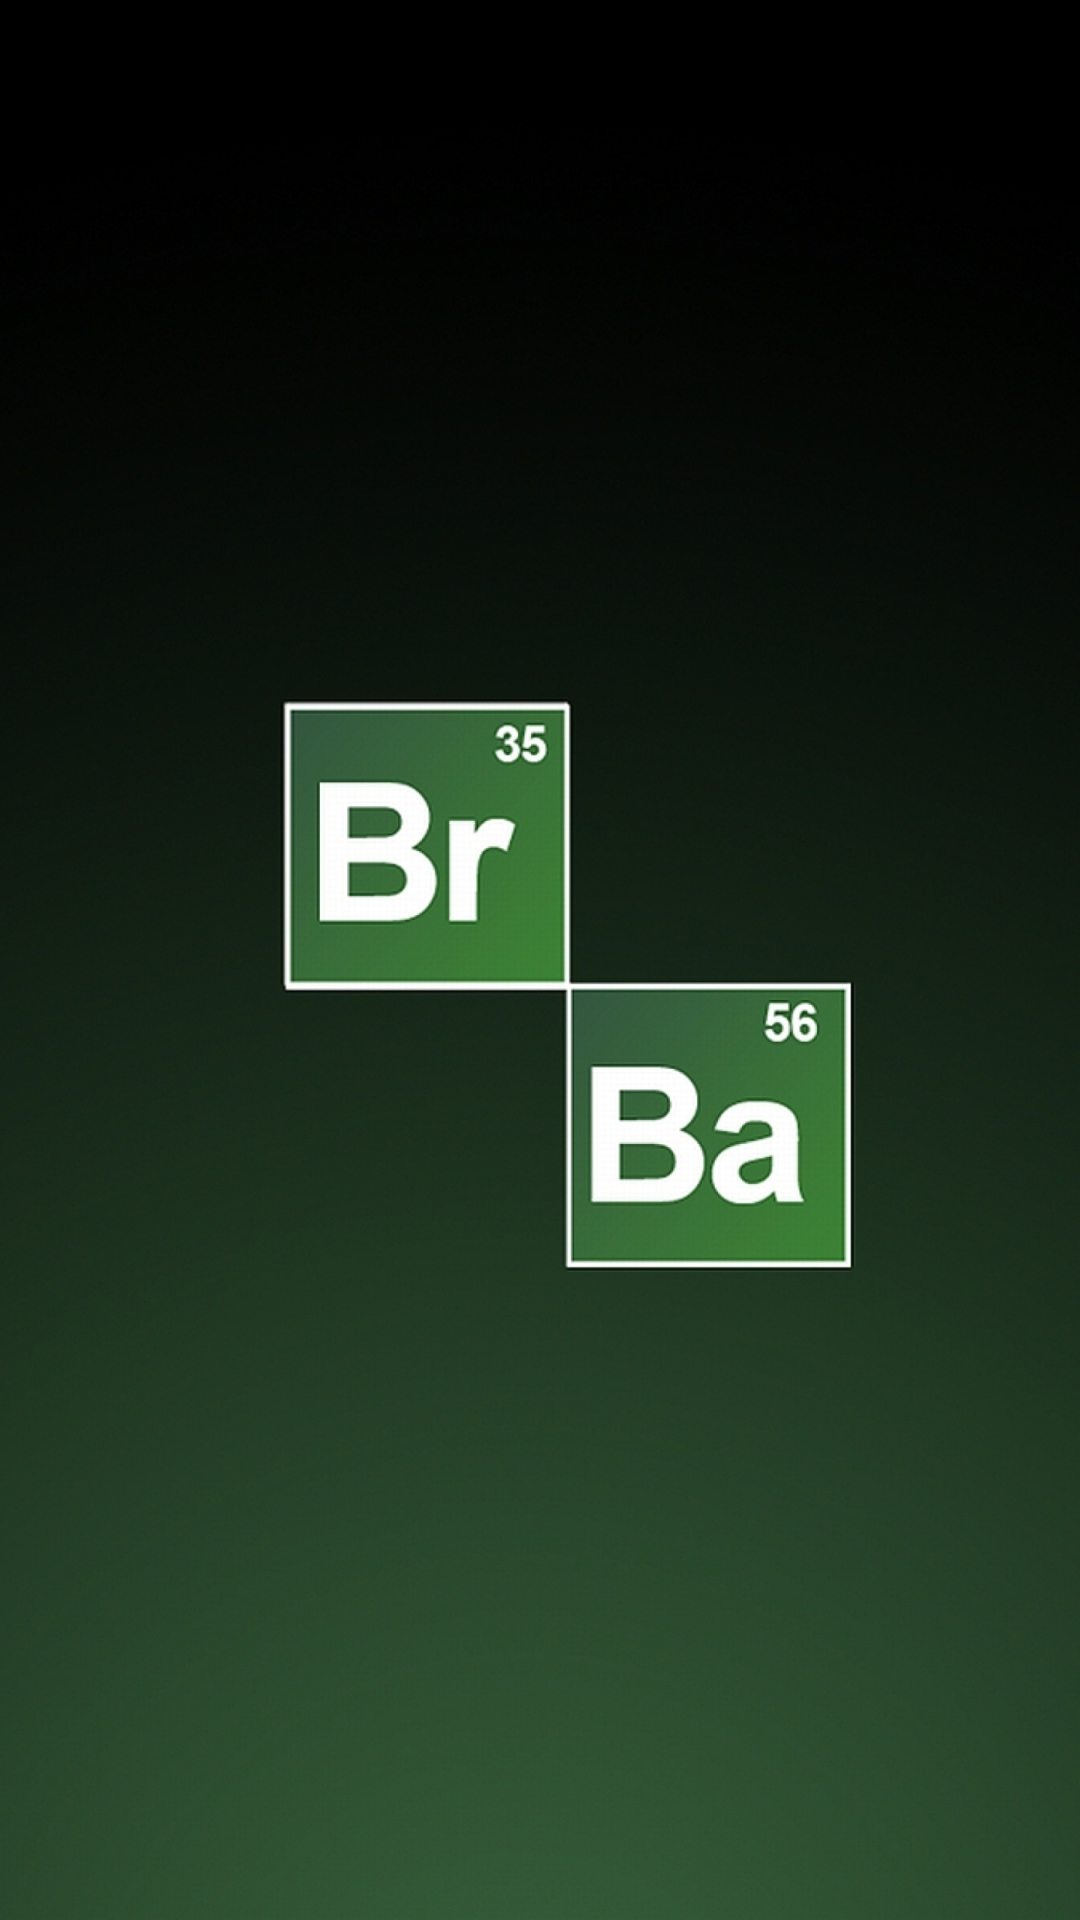 Free Download Cute Wallpapers For Android Hd Breaking Bad Backgrounds For Iphone Pixelstalk Net